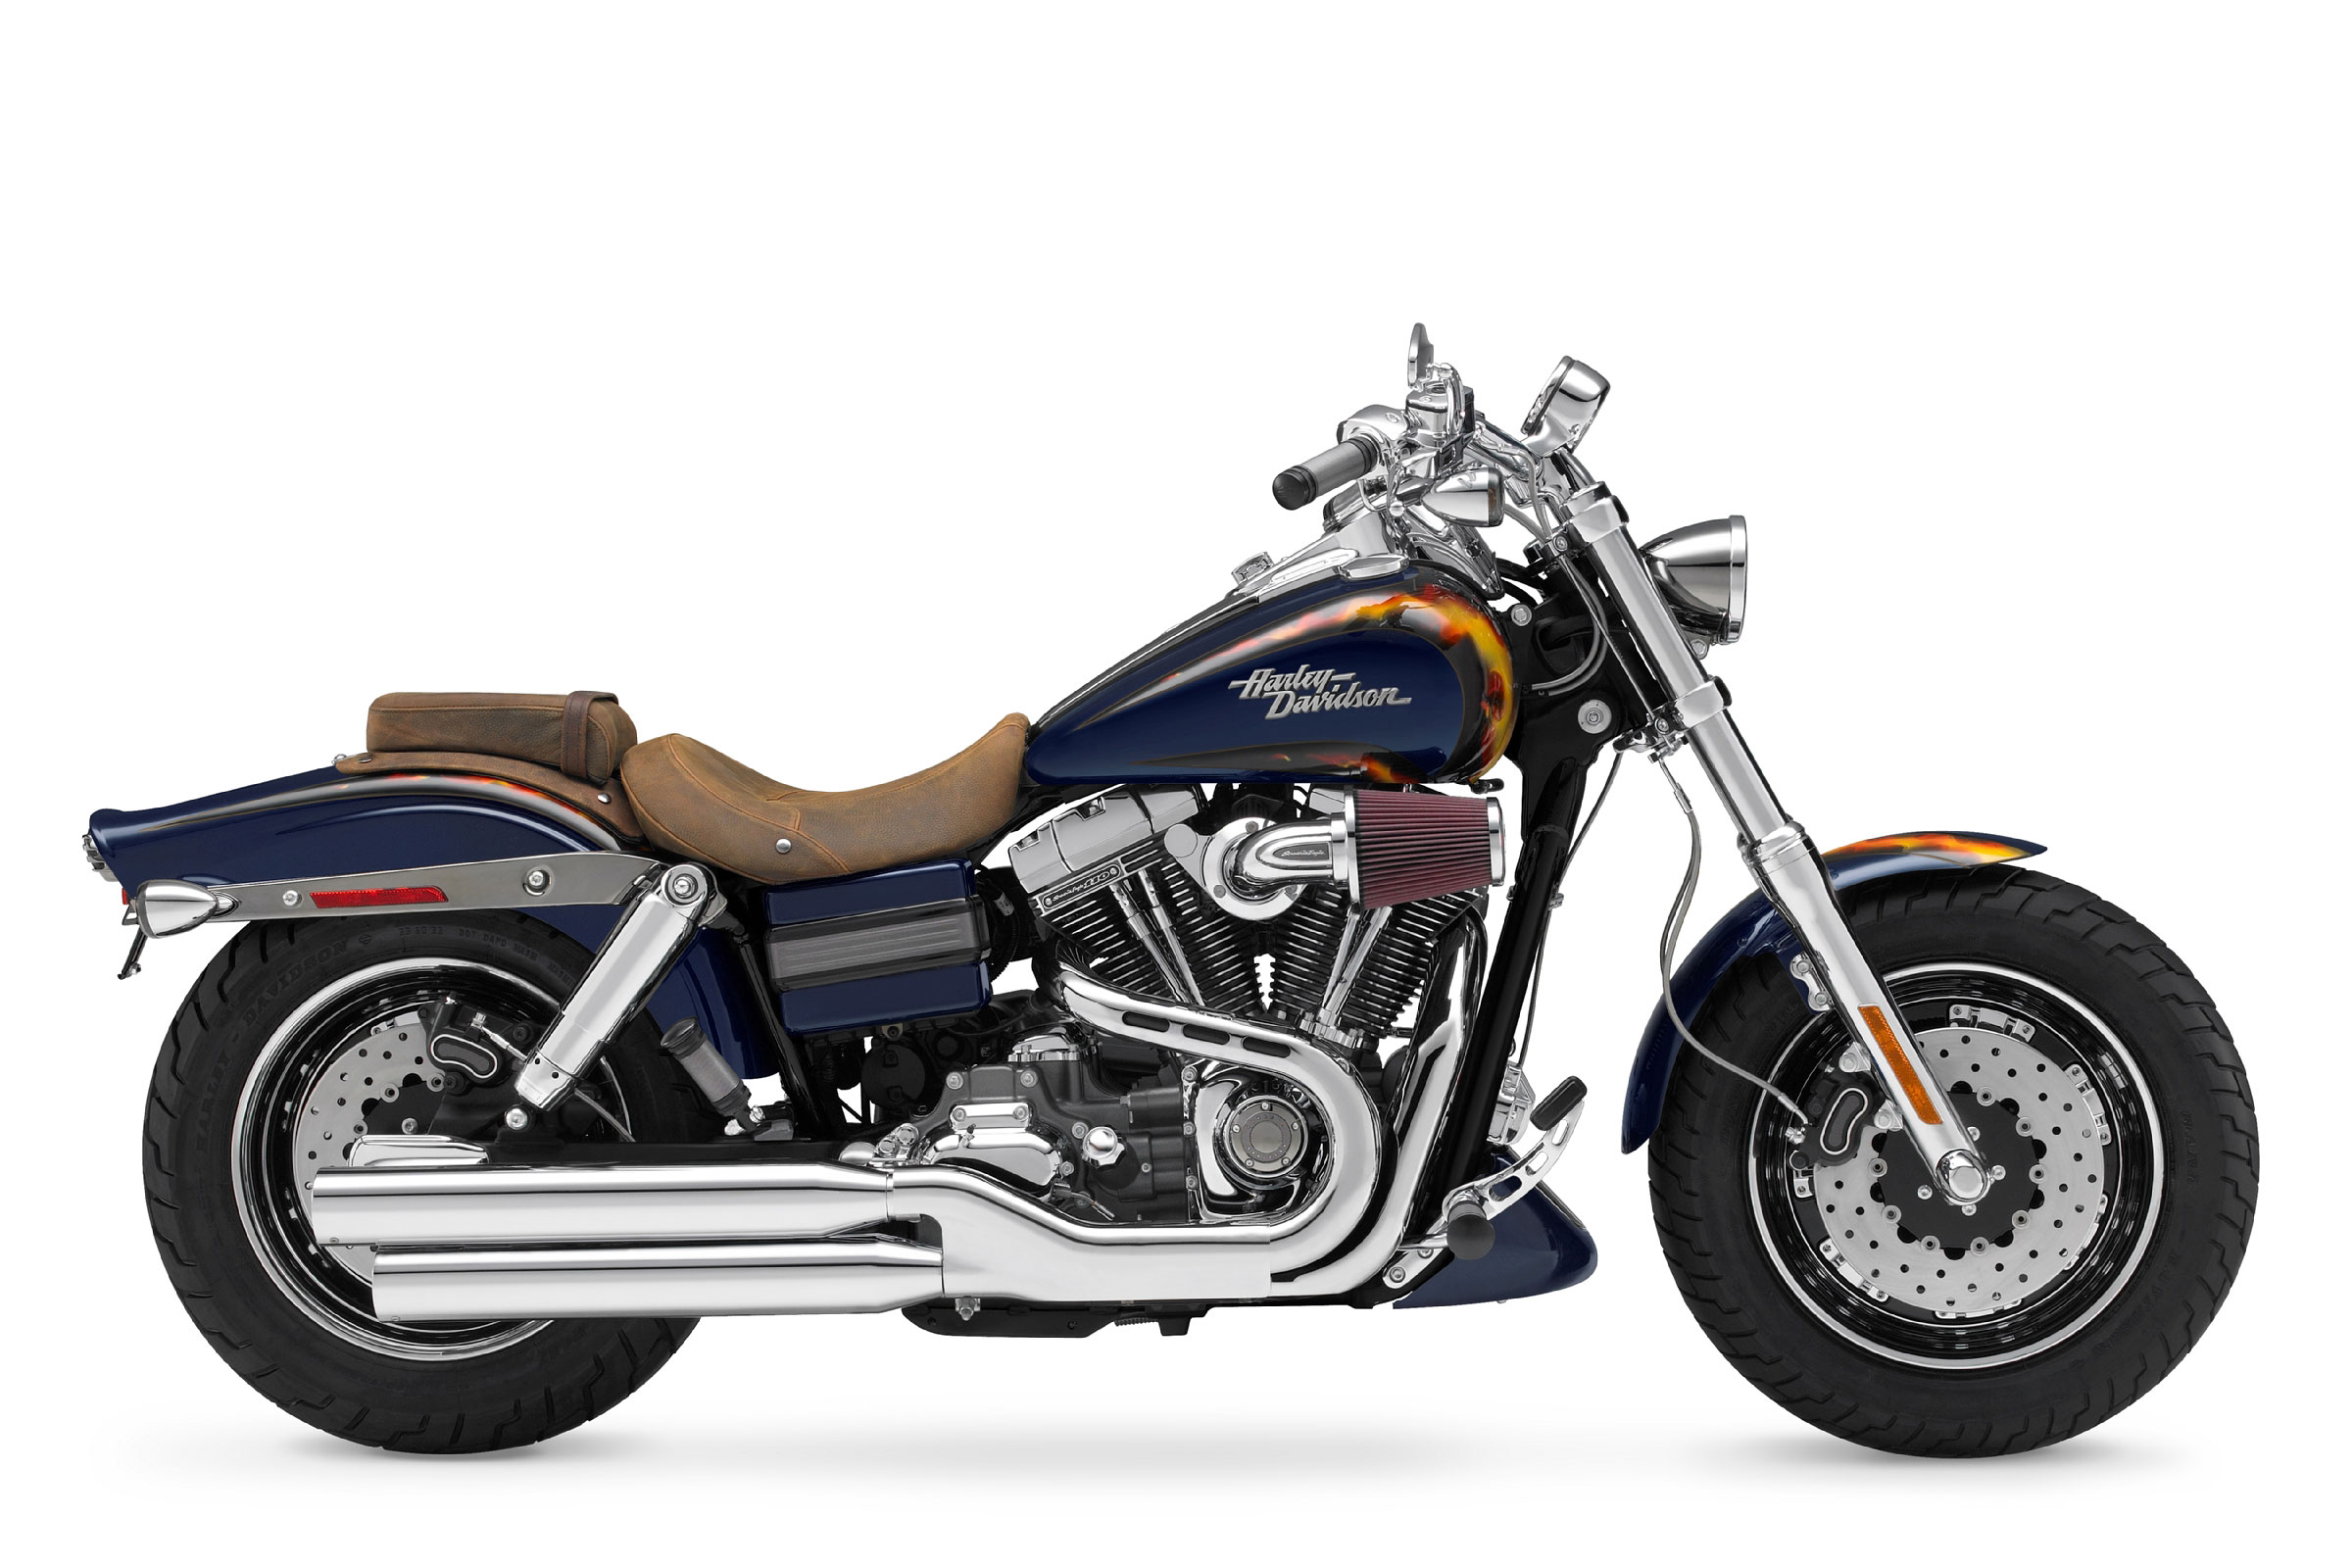 2010 Harley Davidson CVO Fat Bob FXDFSE2 f wallpaper background 2400x1600